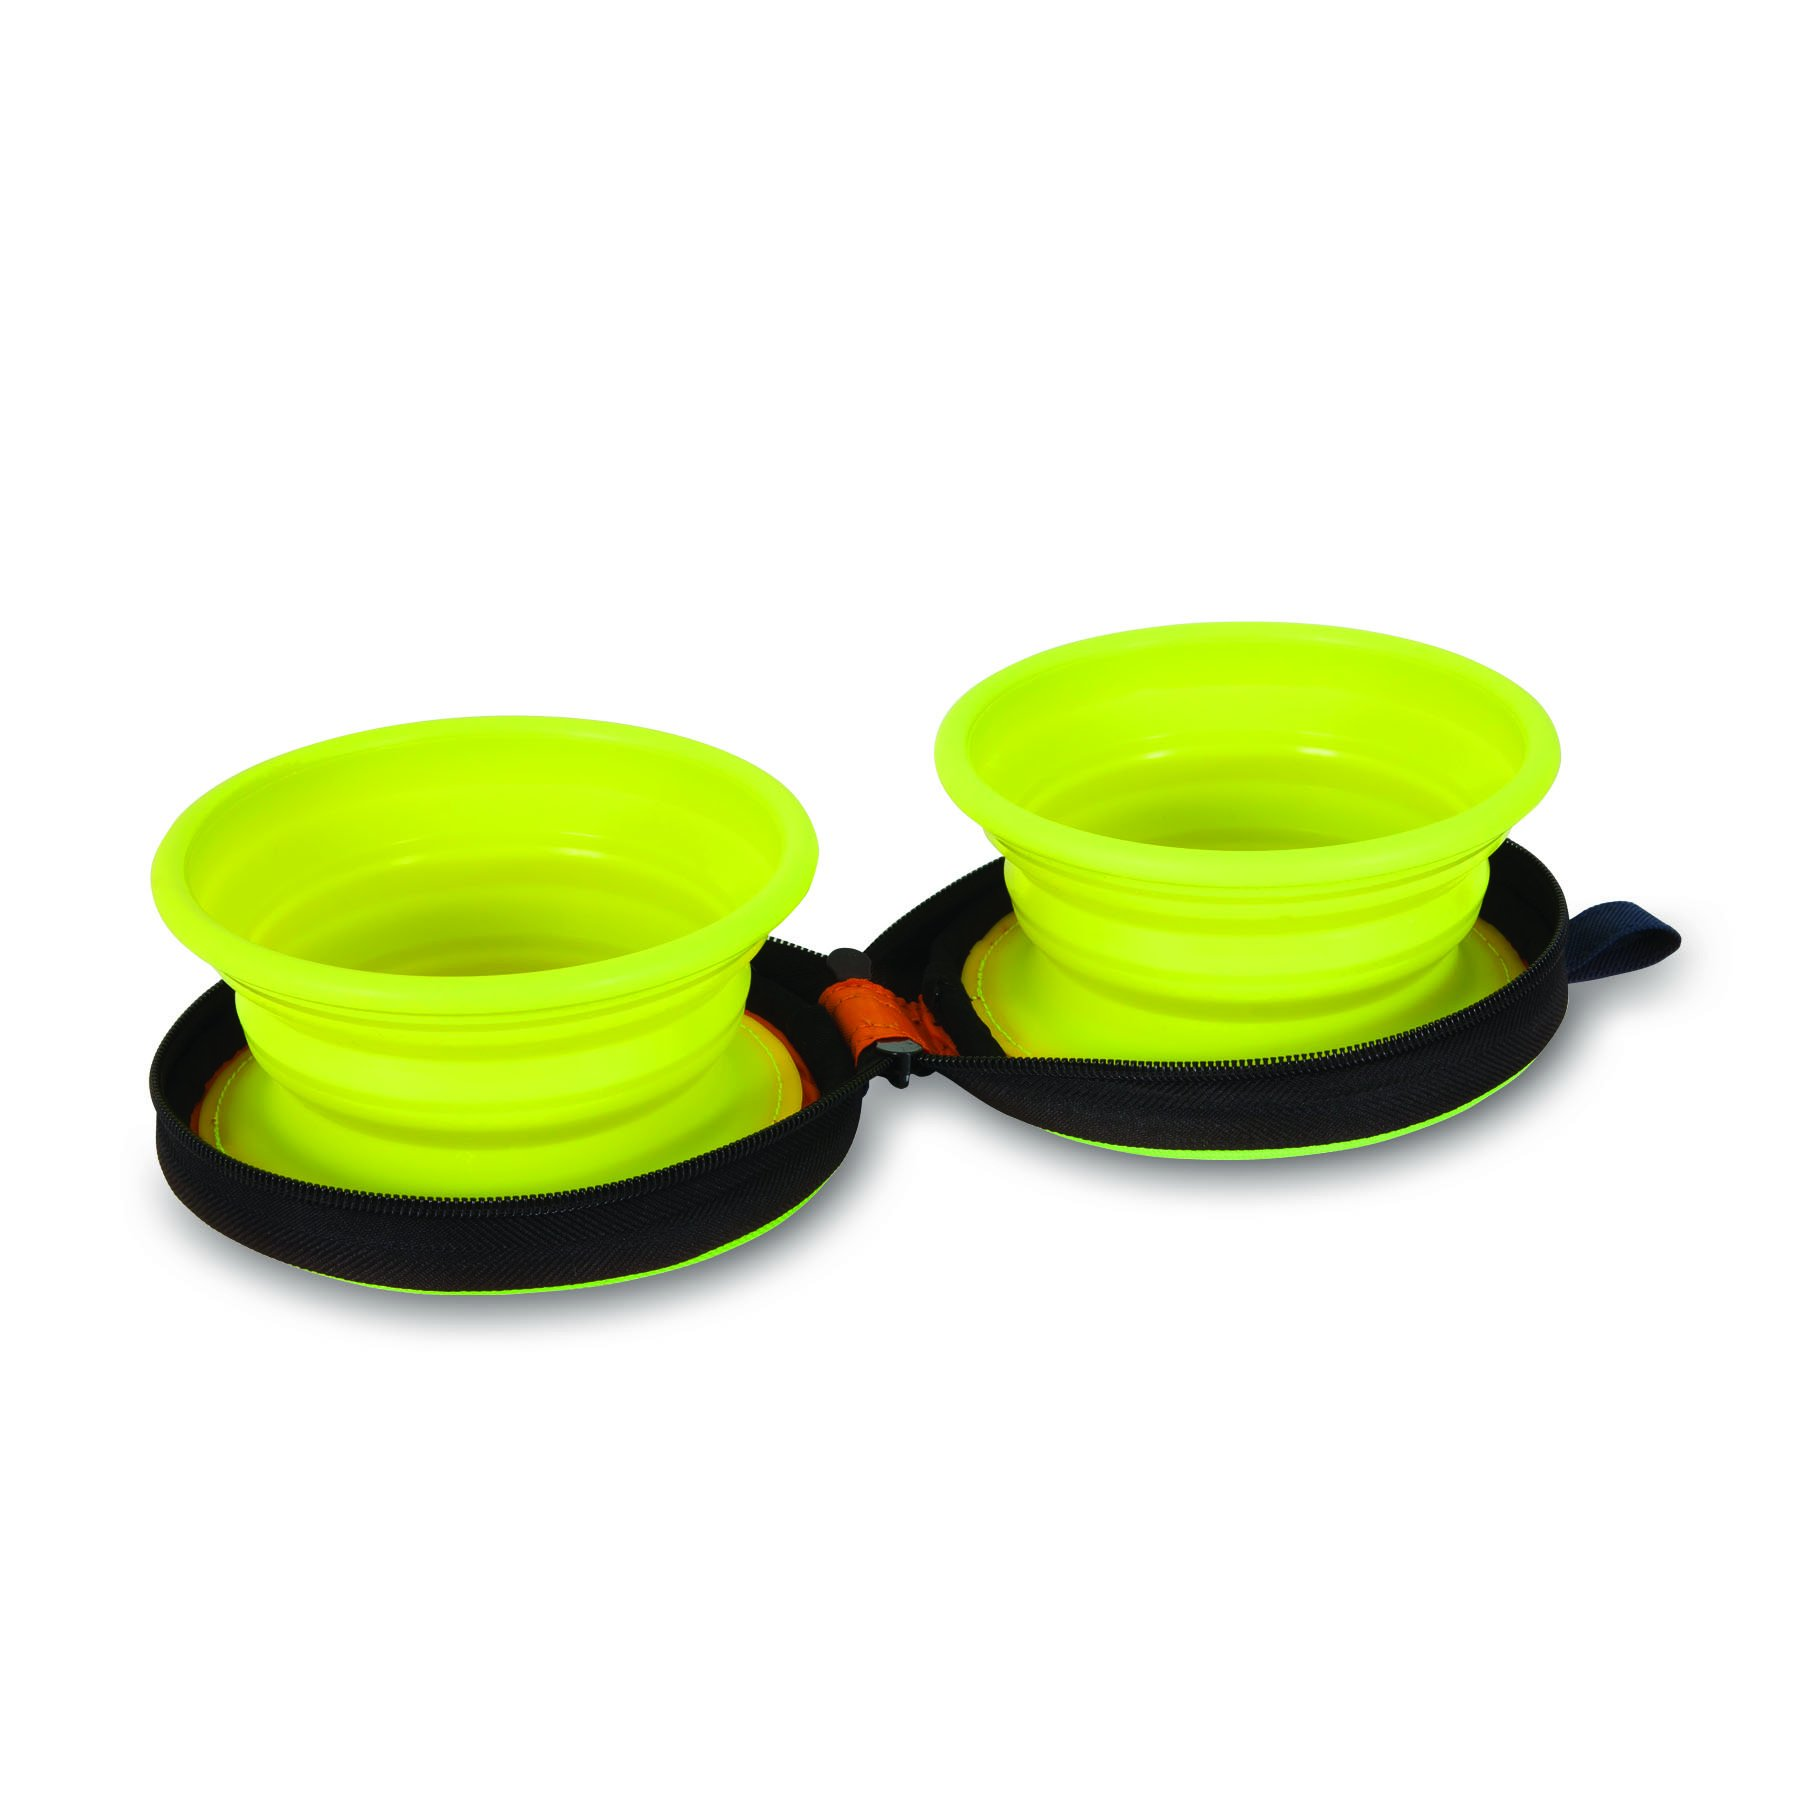 Petmate 3-Cup Silicone Duo Travel Bowl by Petmate (Image #2)